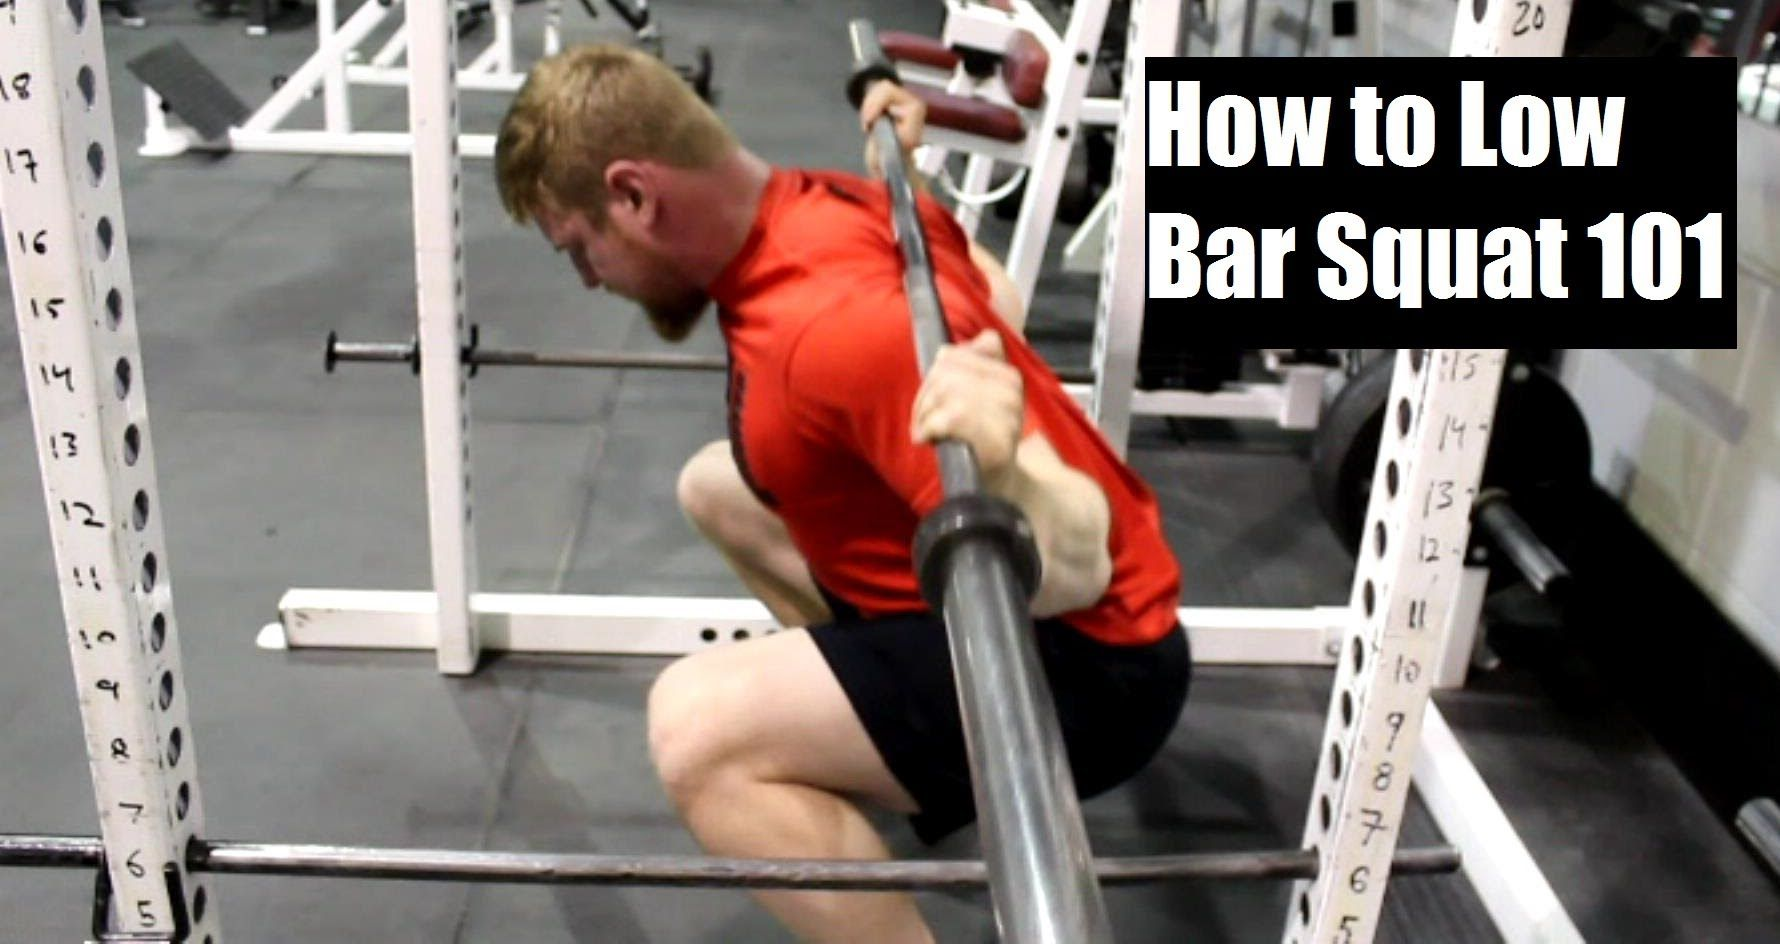 How to low bar squat correctly proper form for building muscle how to low bar squat correctly proper form for building muscle strength falaconquin